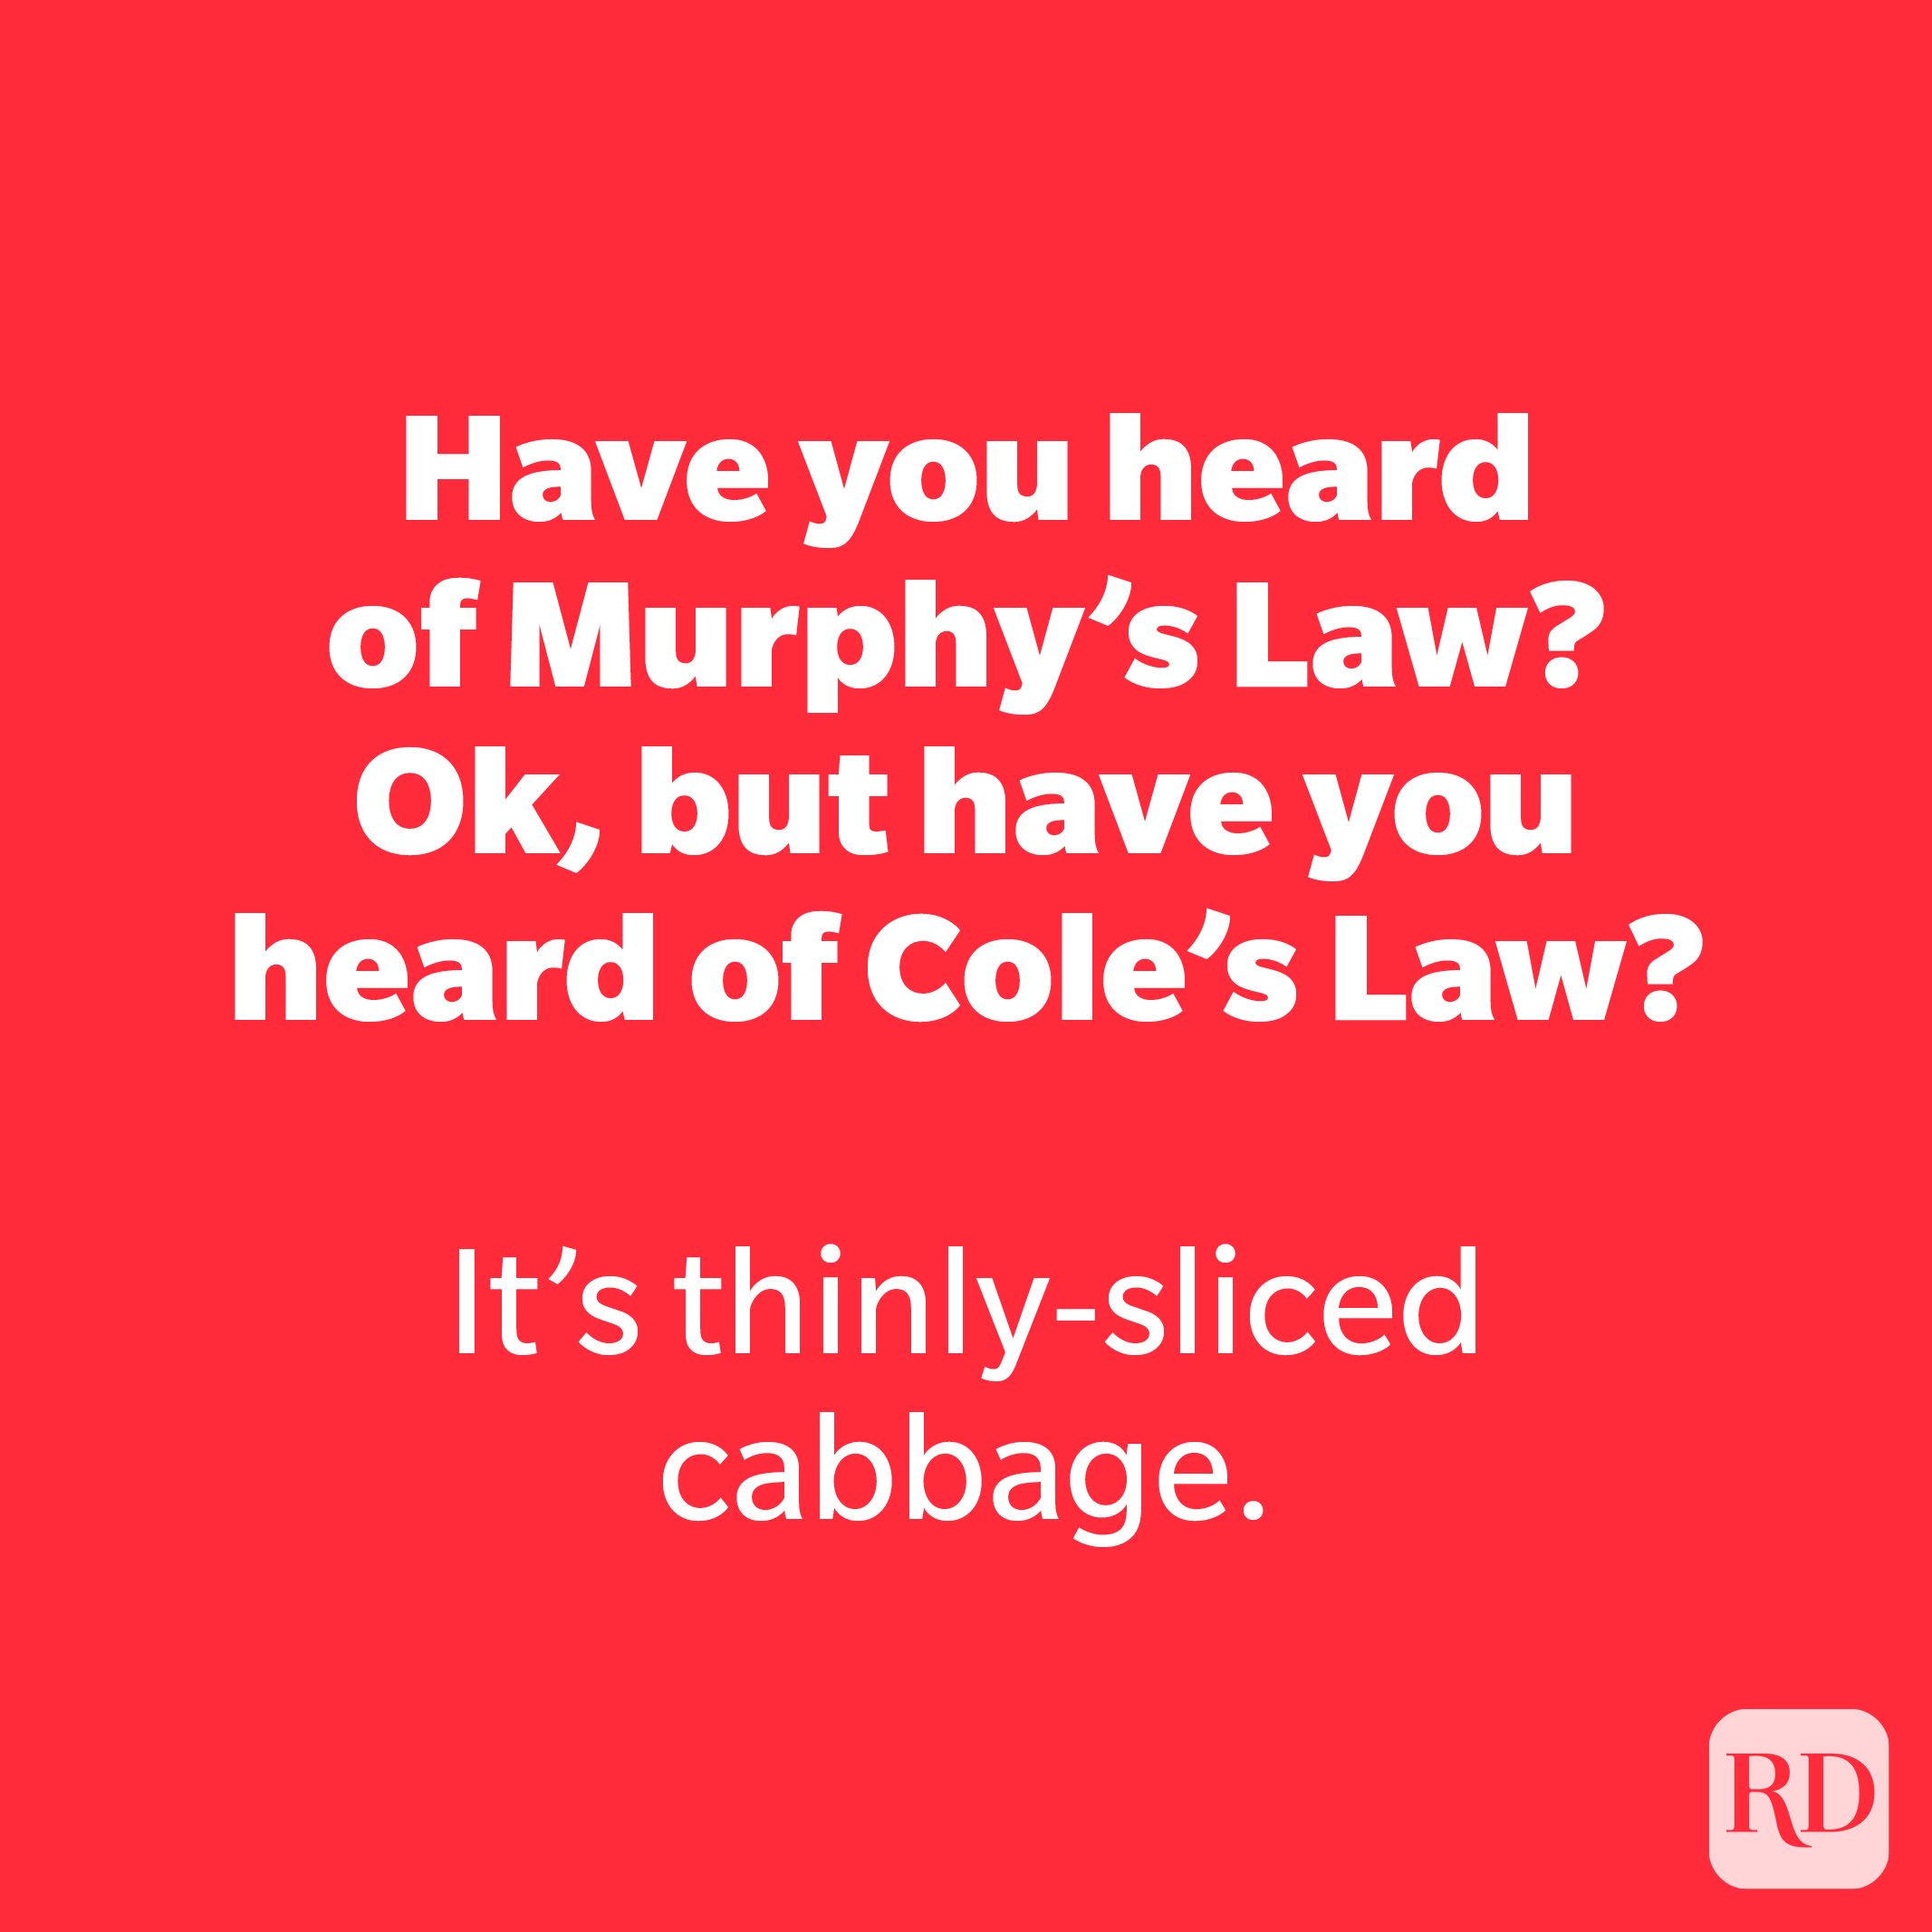 Have you heard of Murphy's Law? Ok, but have you heard of Cole's Law?